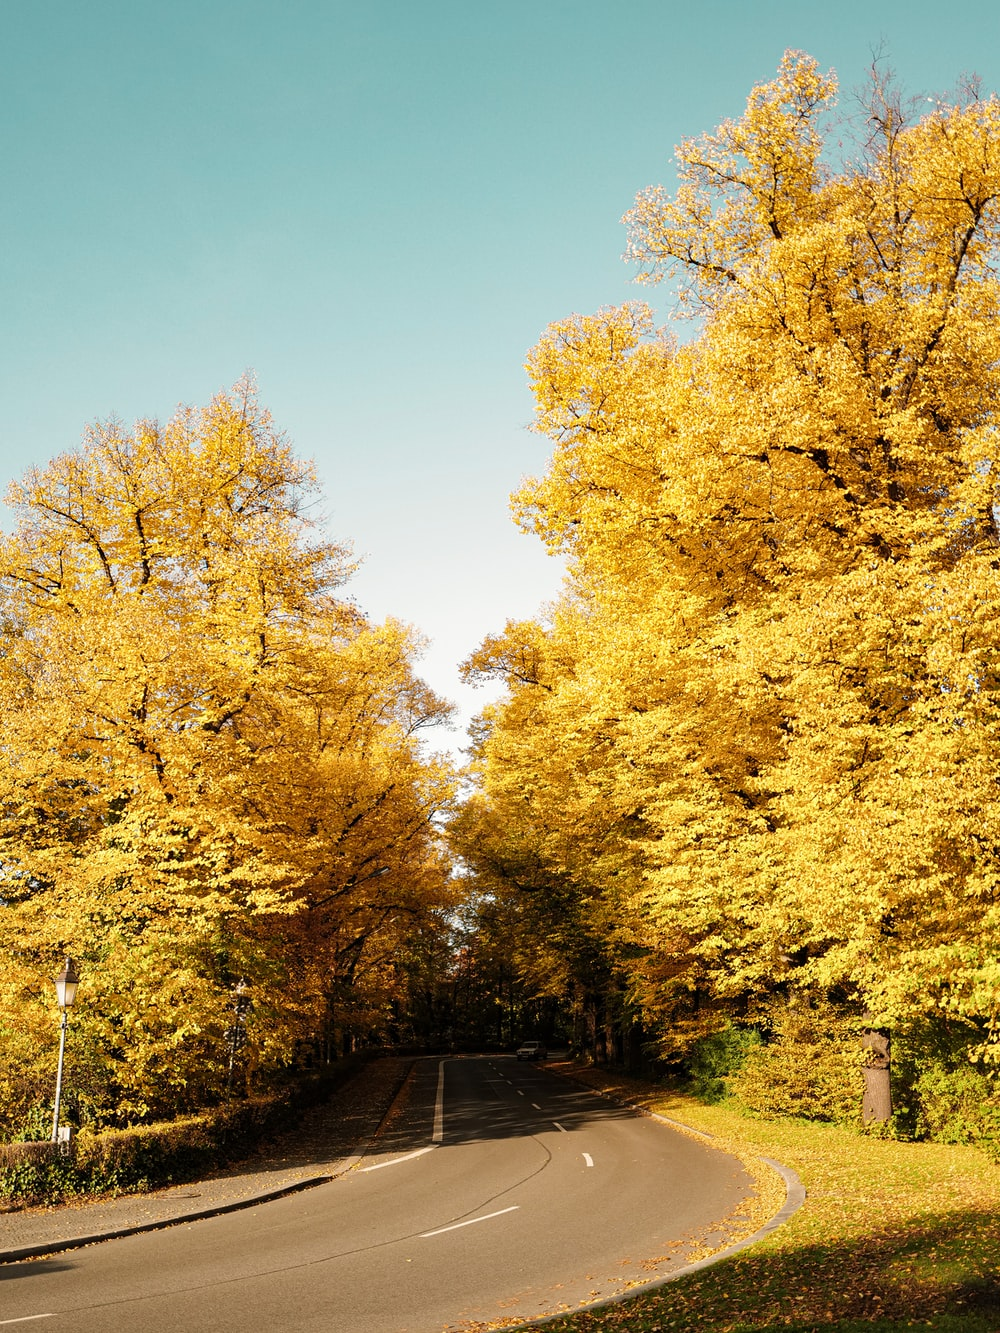 green and yellow trees beside gray concrete road during daytime